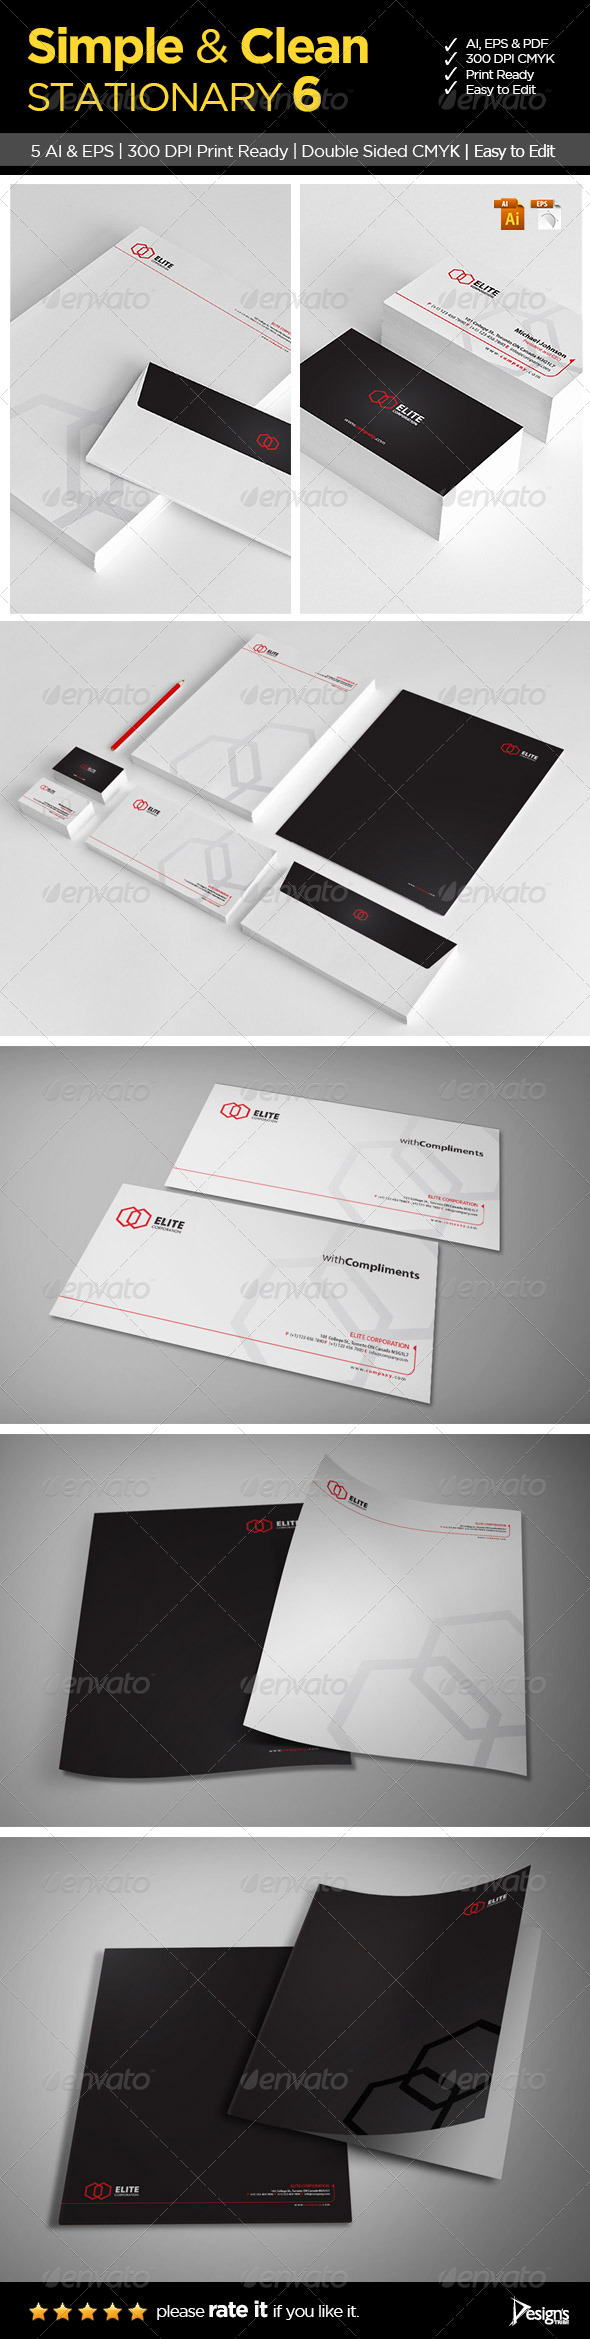 GraphicRiver Simple and Clean Stationary 6 6081263